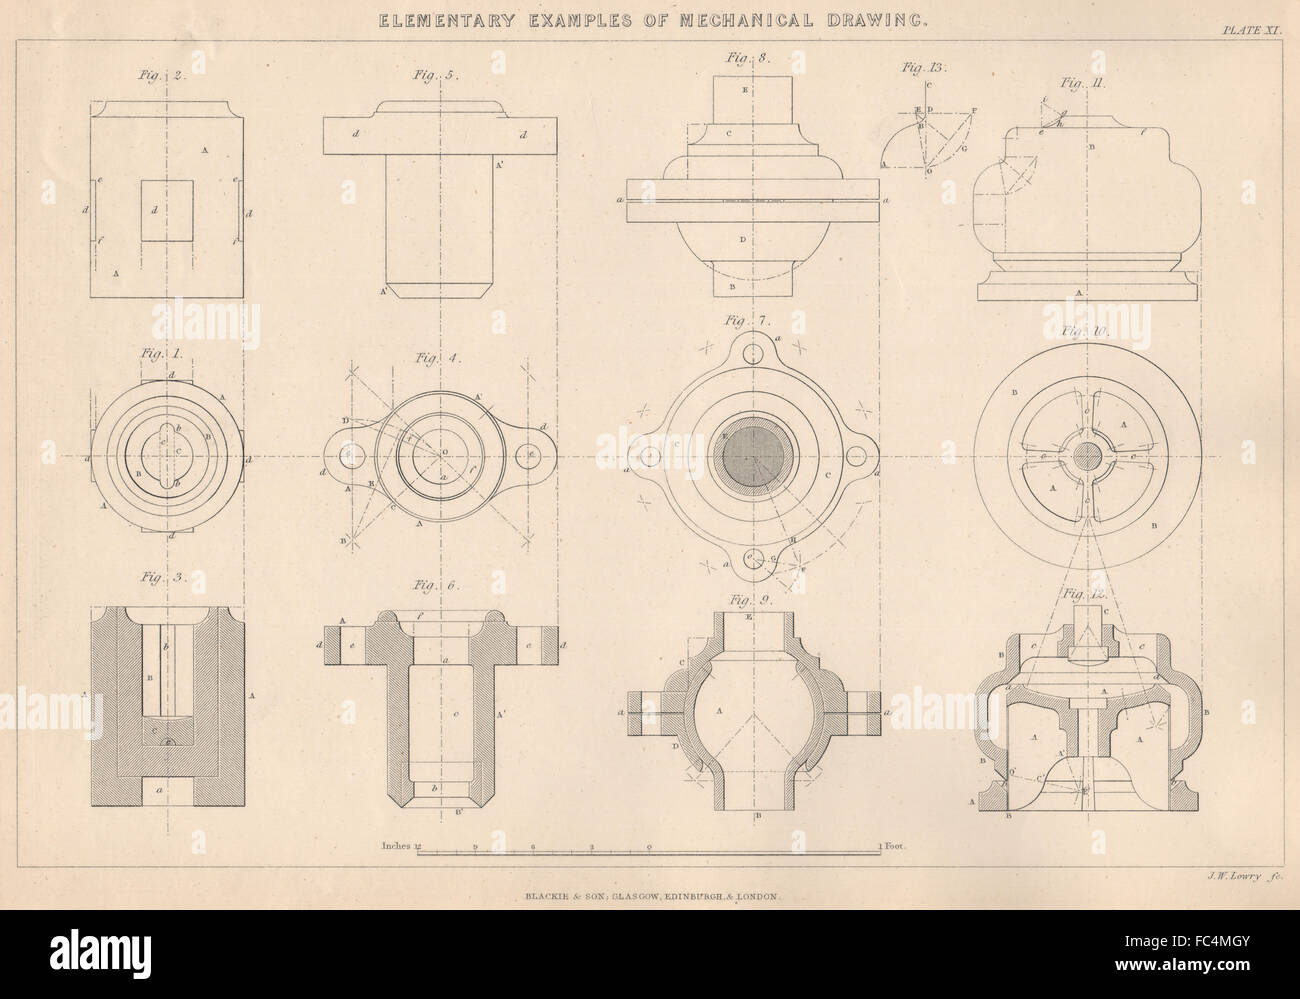 Mechanical engineering drawing stock photos mechanical engineering victorian engineeringmechanical drawing examples of use of sections 1876 stock image malvernweather Choice Image